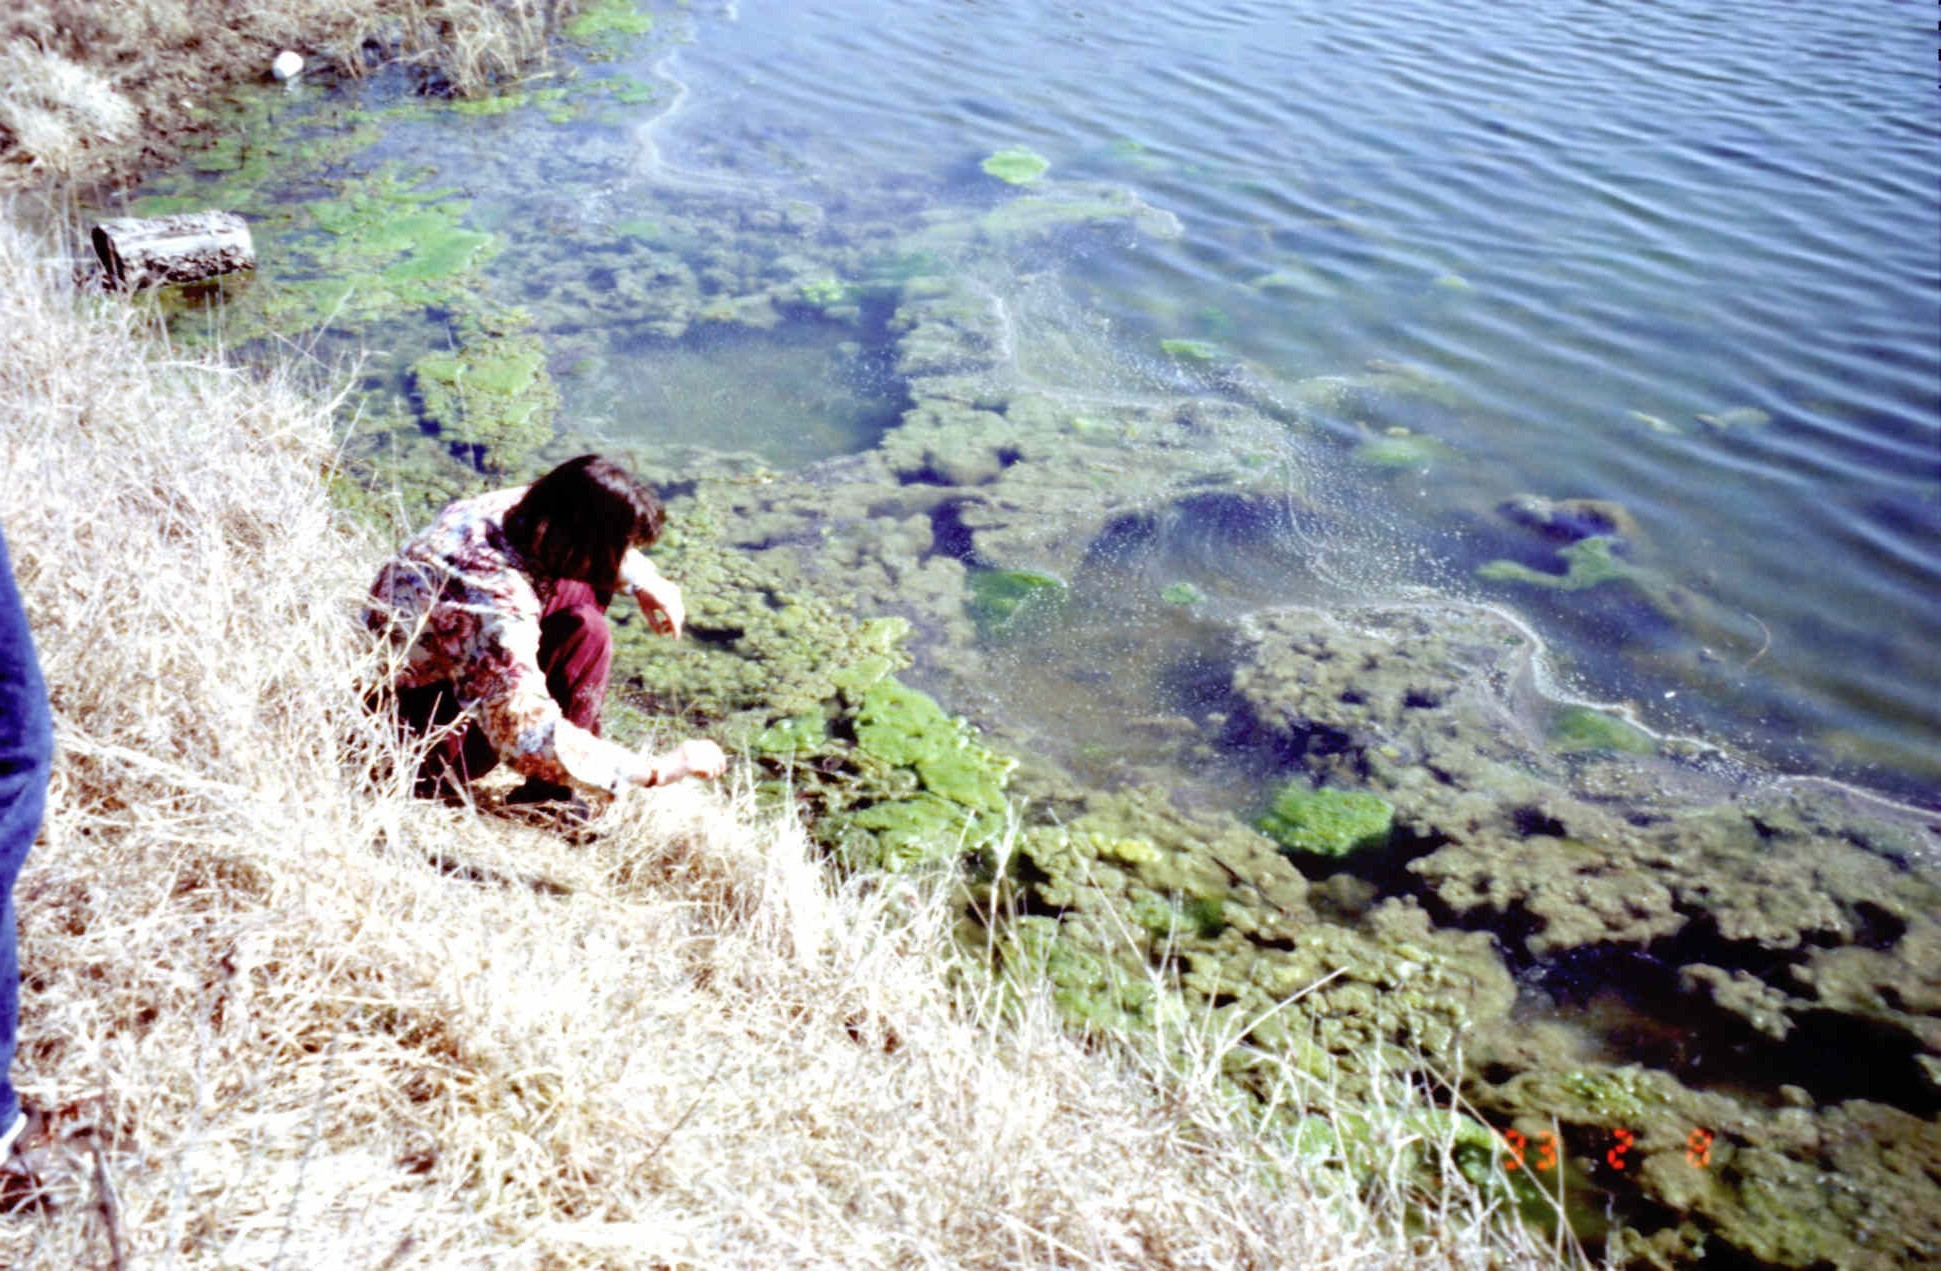 A child on the banks near water with algae.